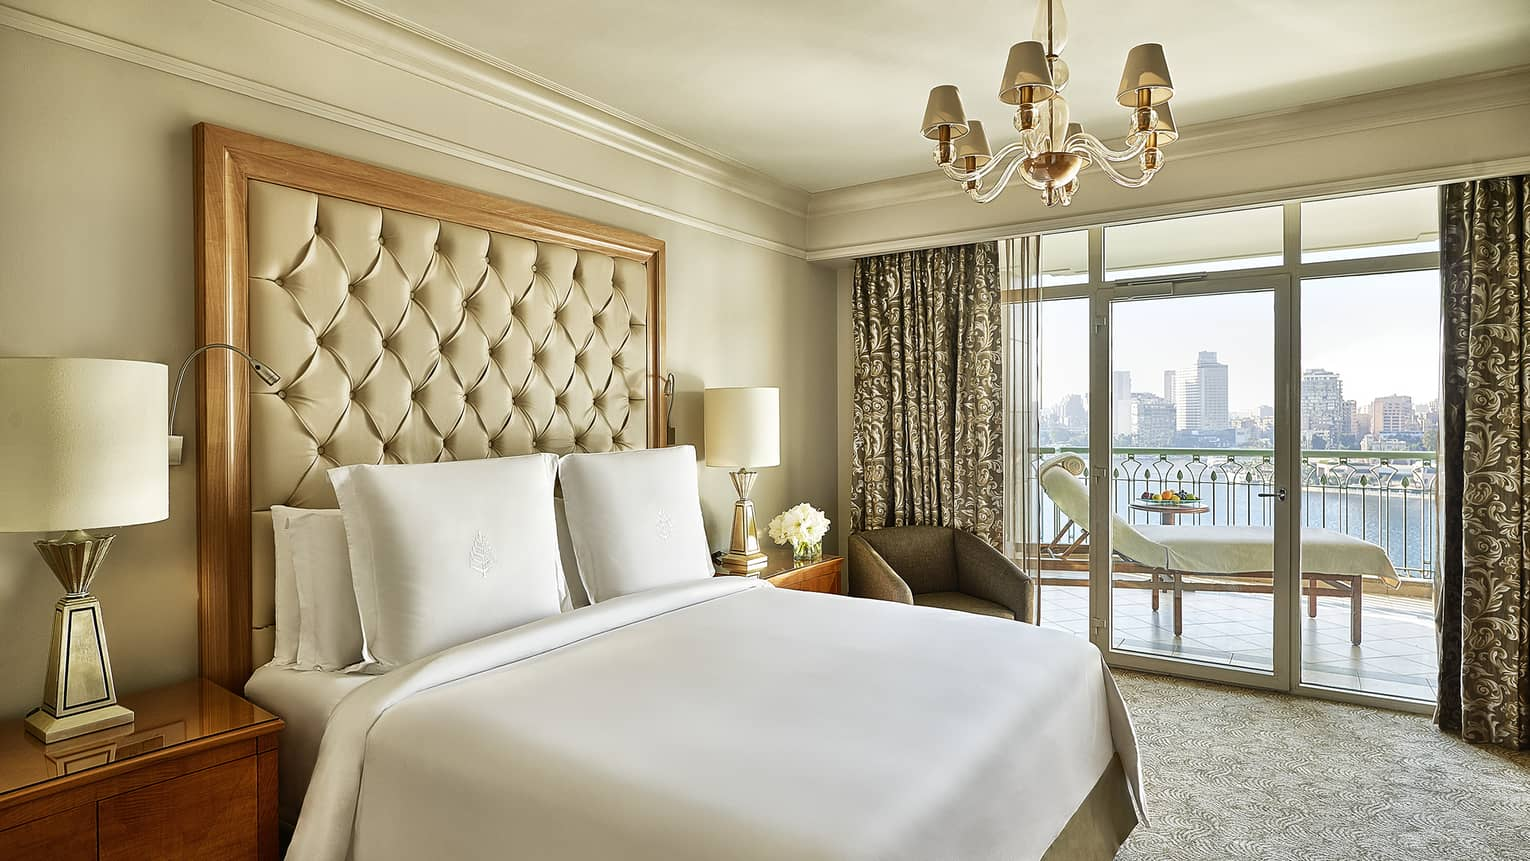 Four Seasons Suite, showing white-dressed bed and city views from windows